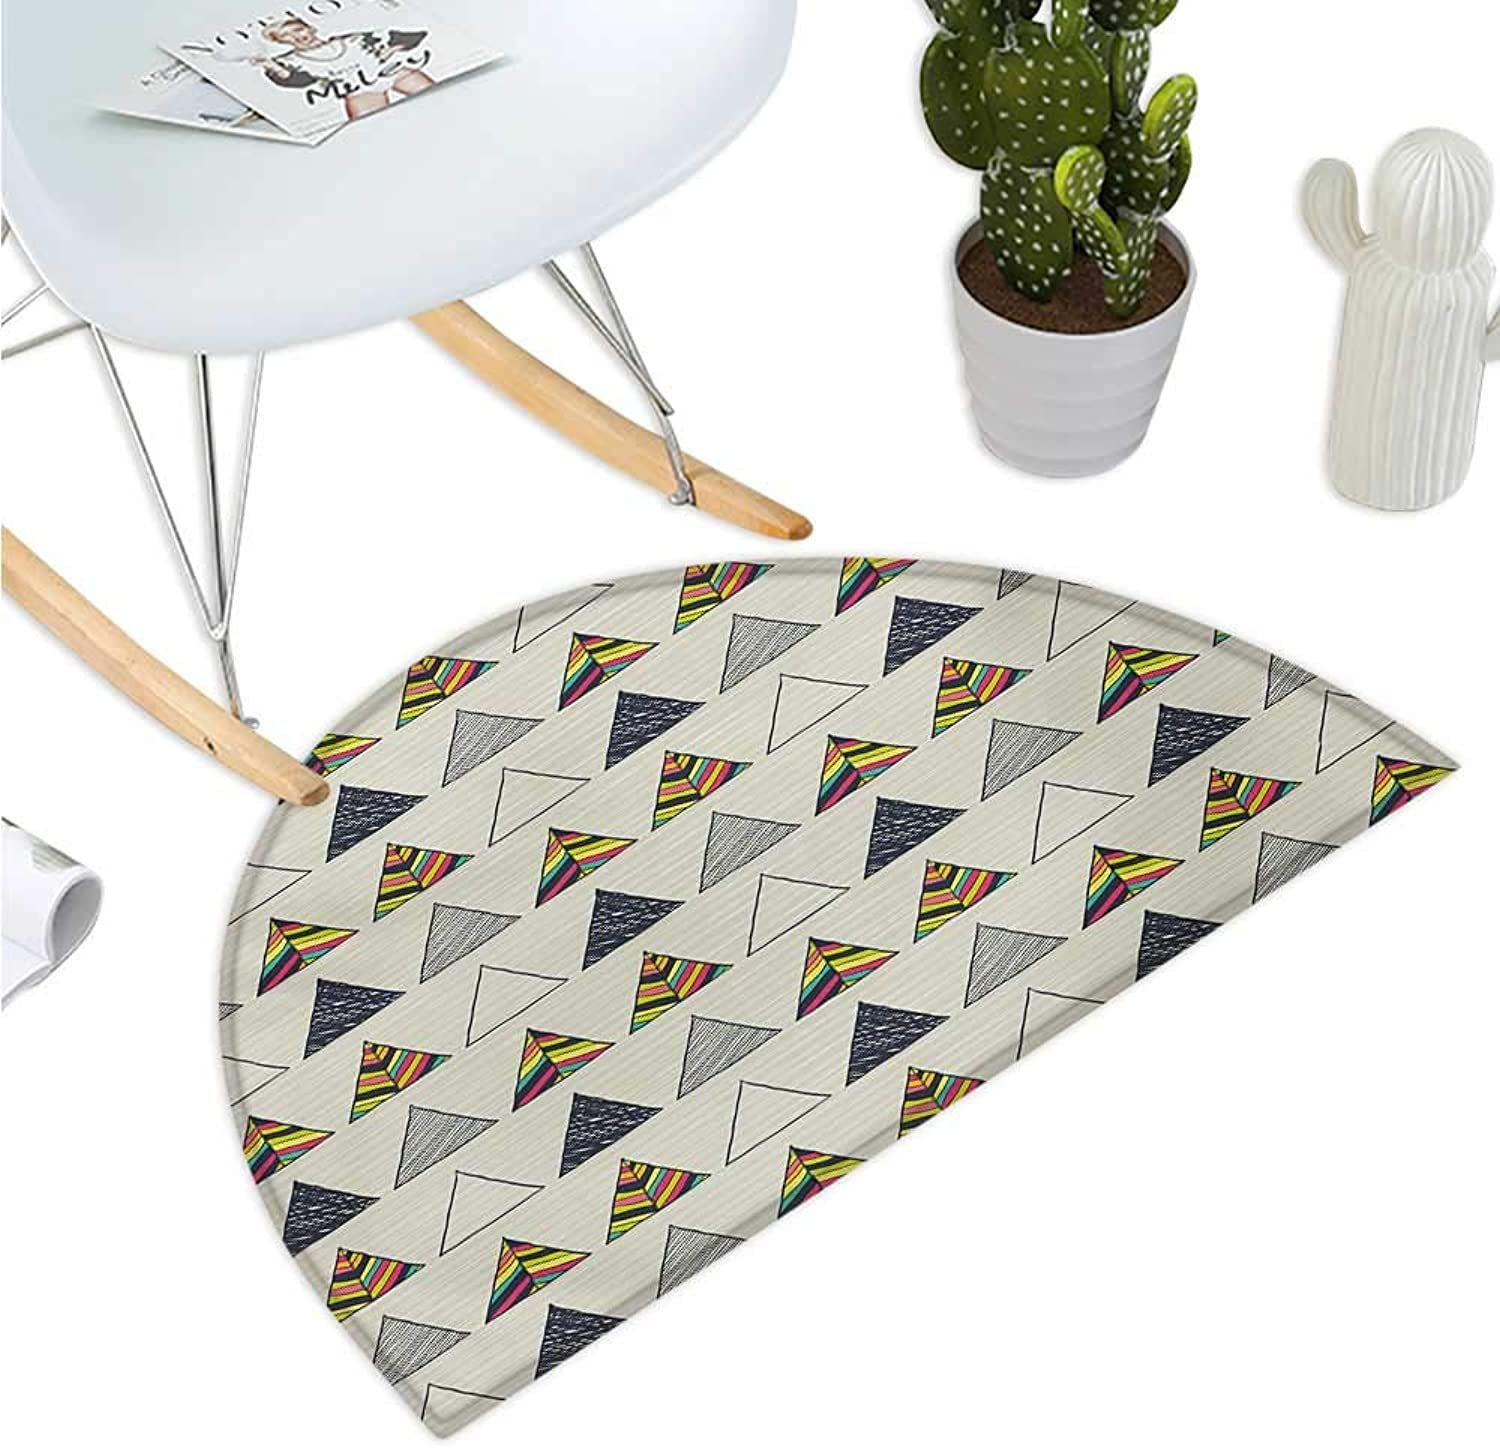 Geometric Half Round Door mats Abstract Hand Drawn Triangles with Minimalist Modern Native Boho Style Illustration Bathroom Mat H 43.3  xD 64.9  Taupe